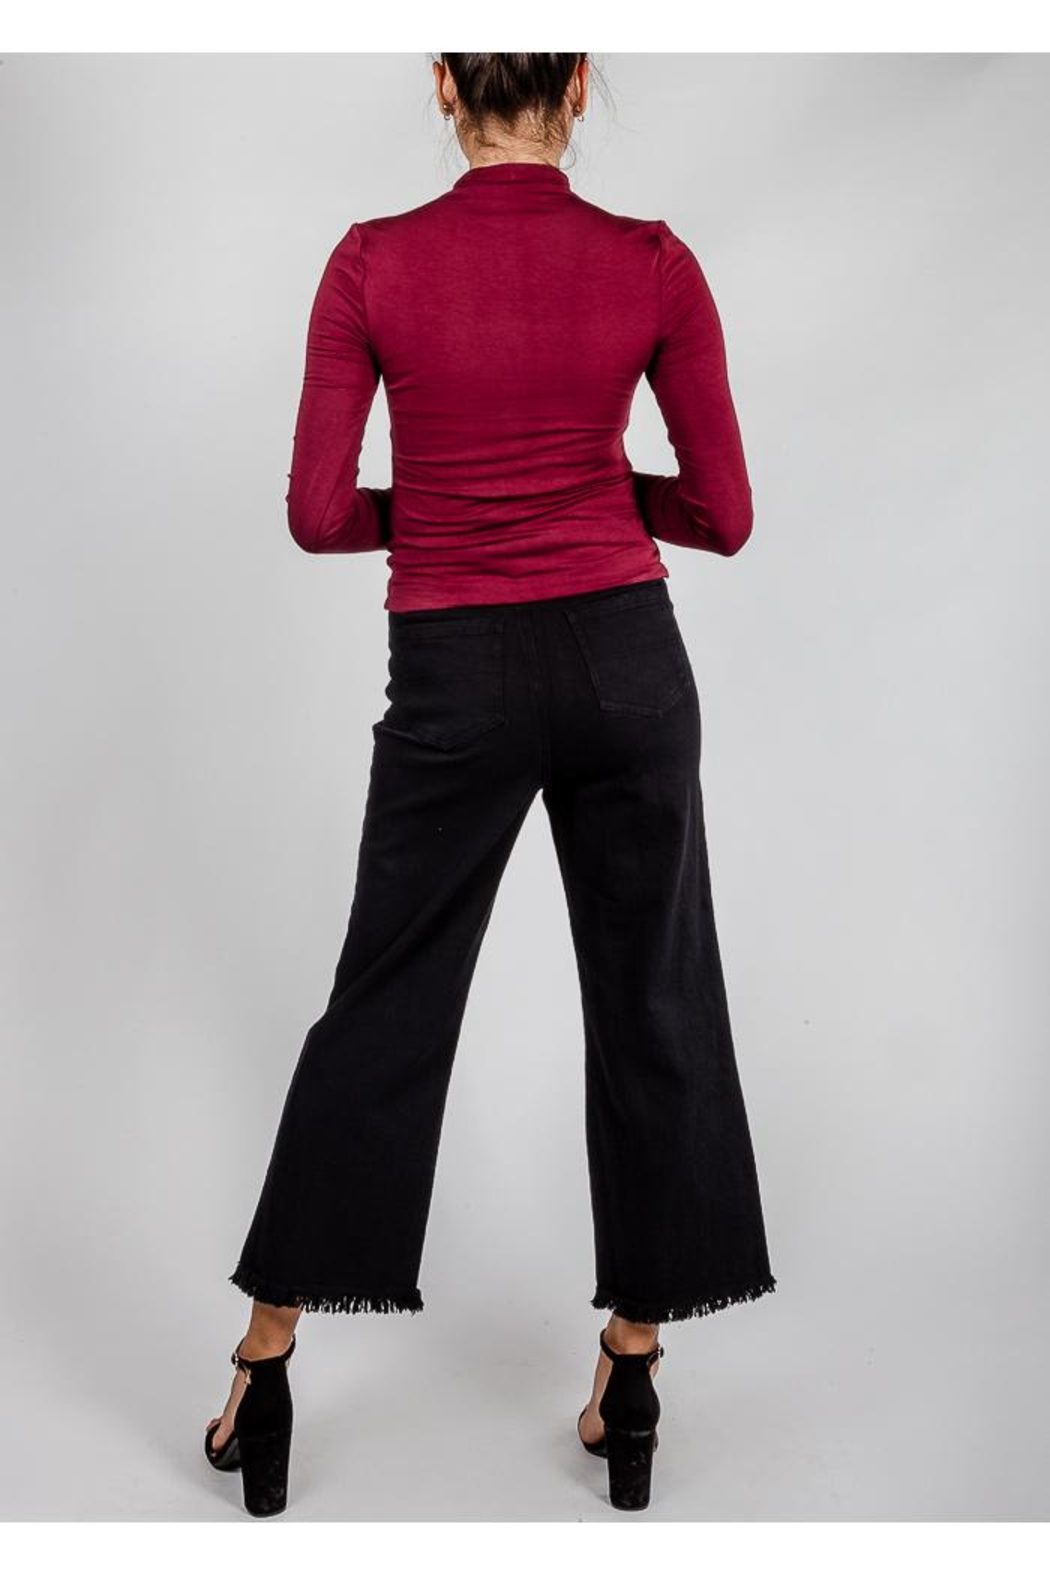 Wild Honey Cut-Off Black Jeans - Side Cropped Image